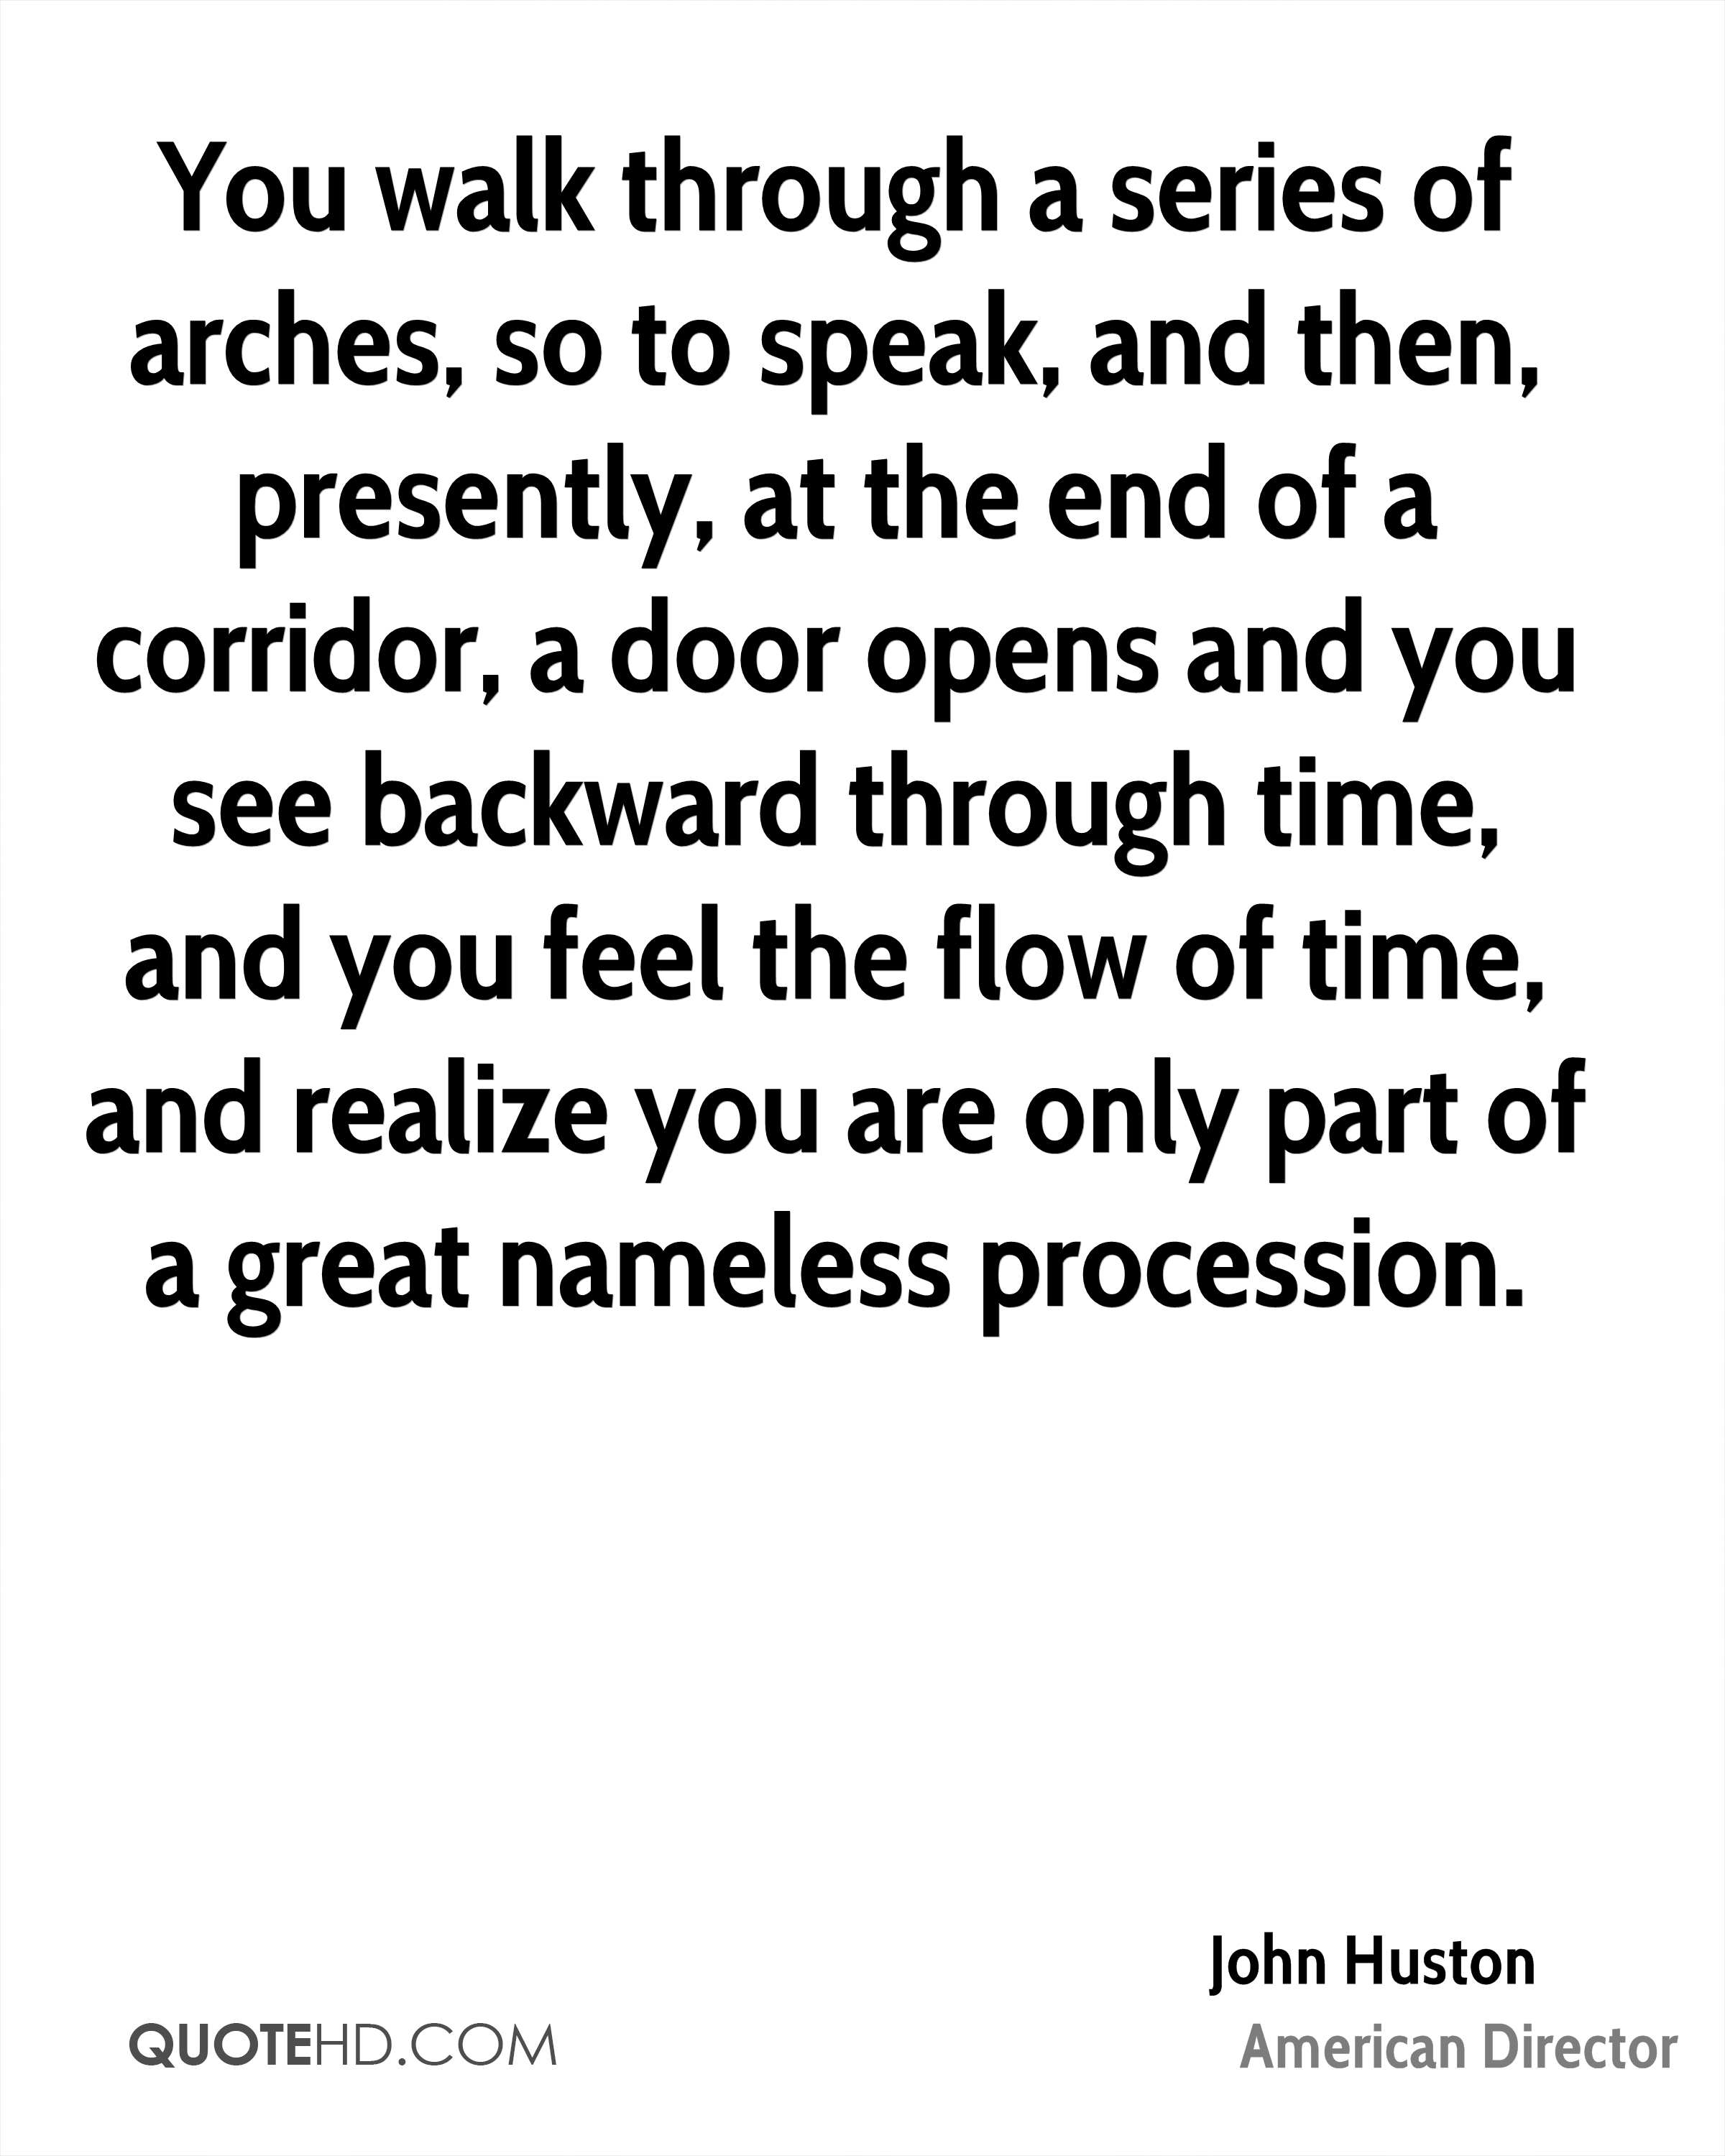 You walk through a series of arches, so to speak, and then, presently, at the end of a corridor, a door opens and you see backward through time, and you feel the flow of time, and realize you are only part of a great nameless procession.